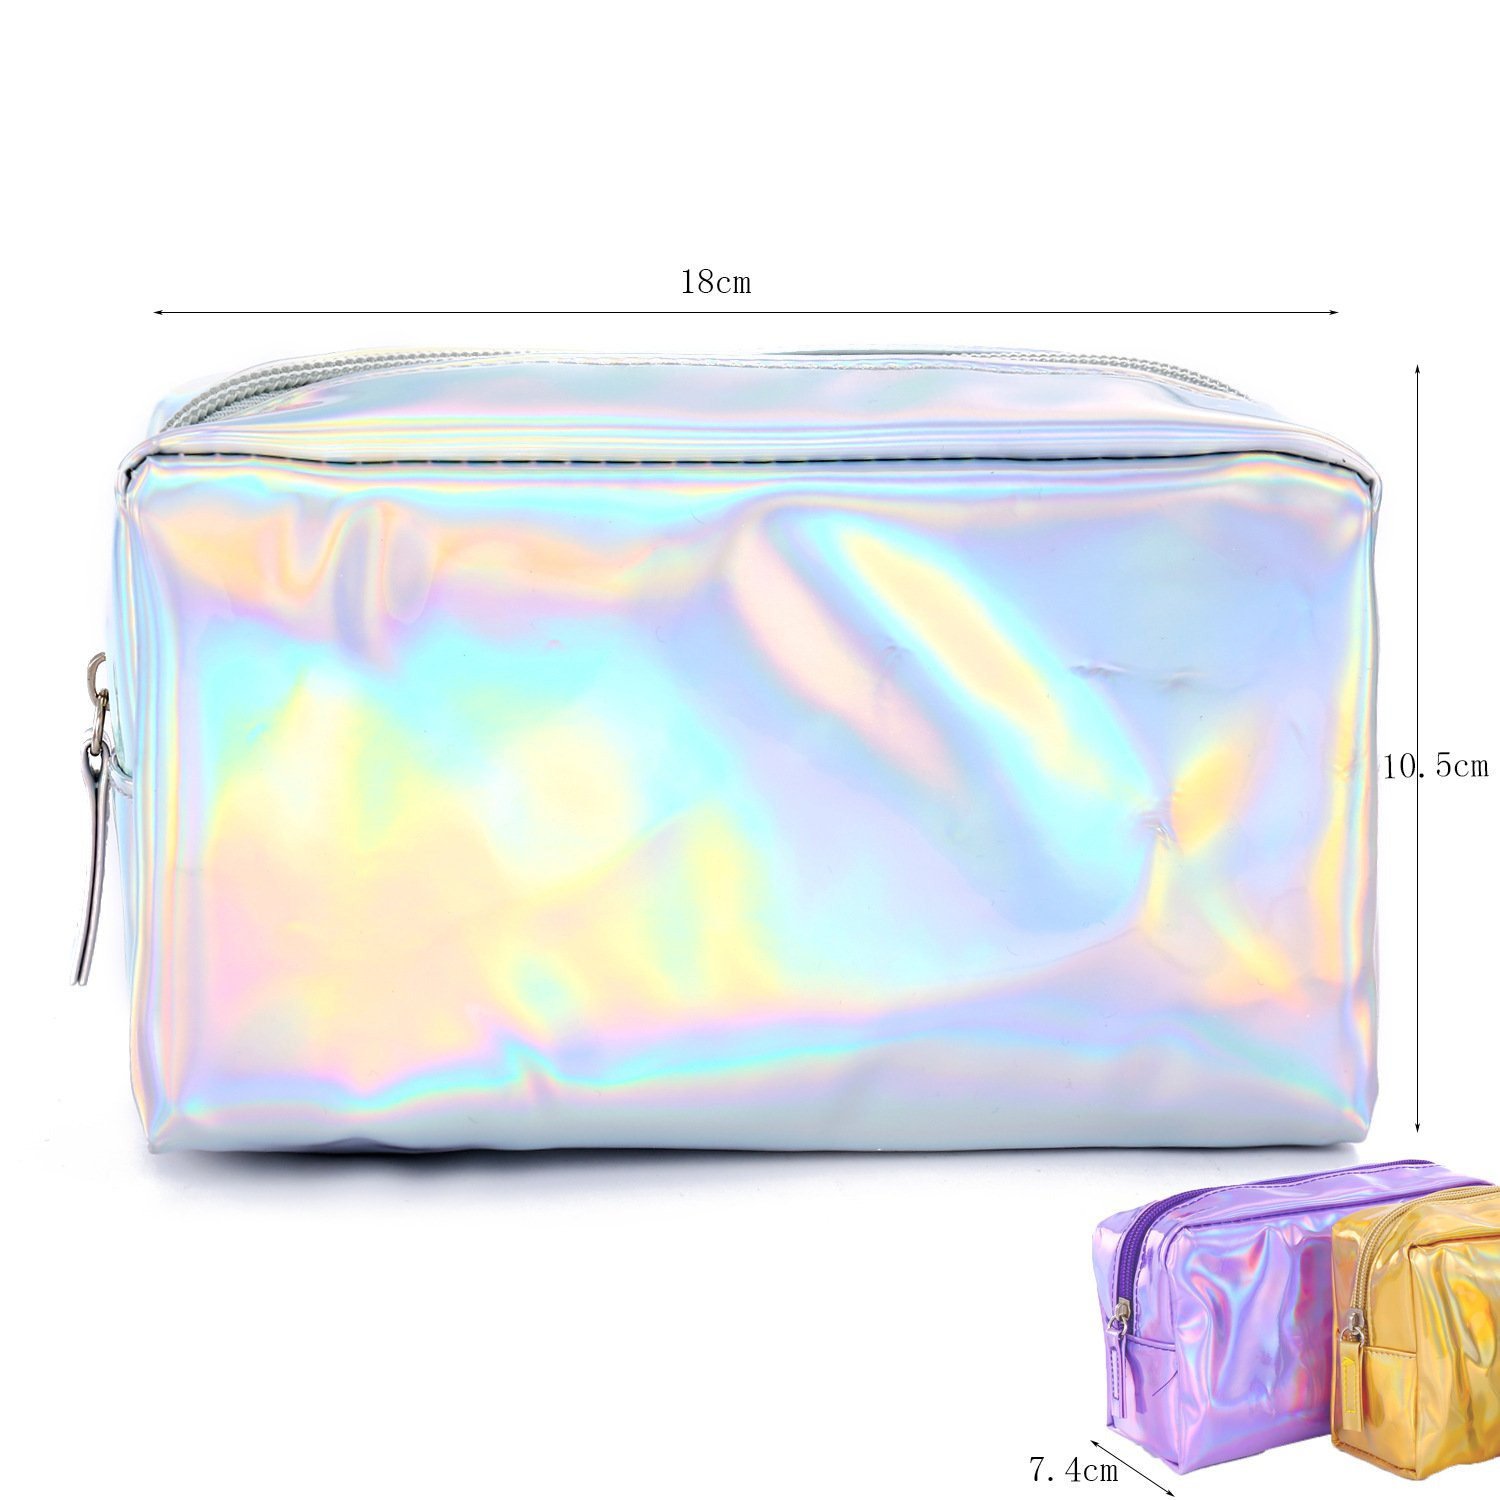 Huihuger Beauty Portable Makeup Bag Waterproof Travel Toiletry Bag Pencil Case Cosmetic Pouch Money Pouch for Women Girls